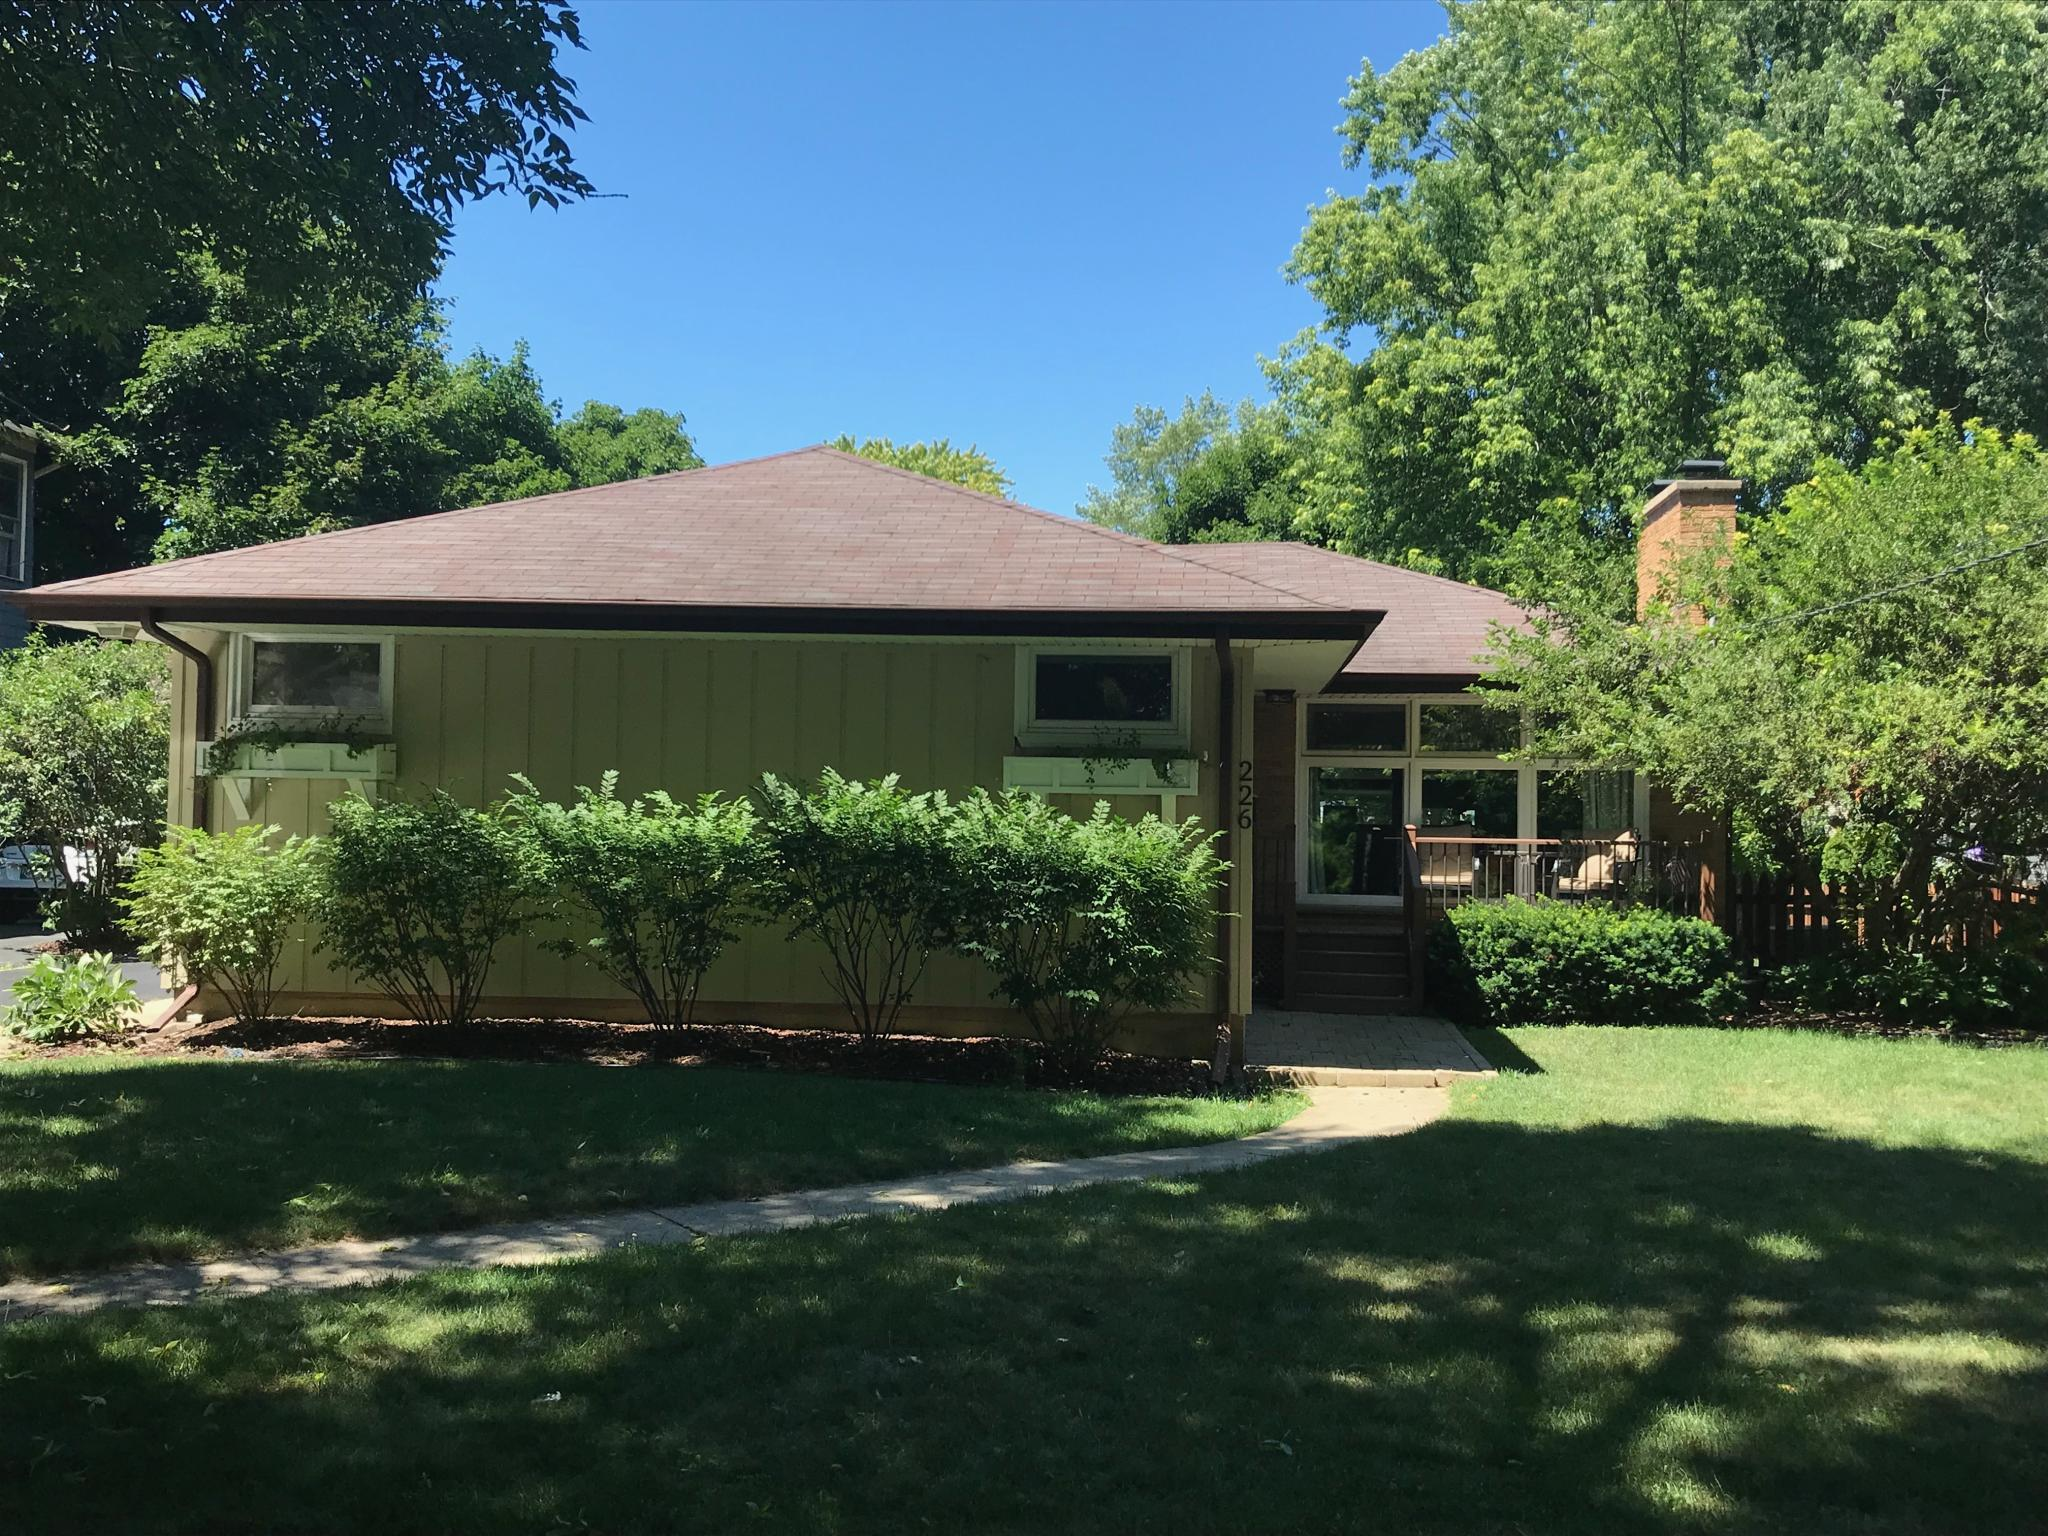 226 Harding St For Rent Grayslake IL